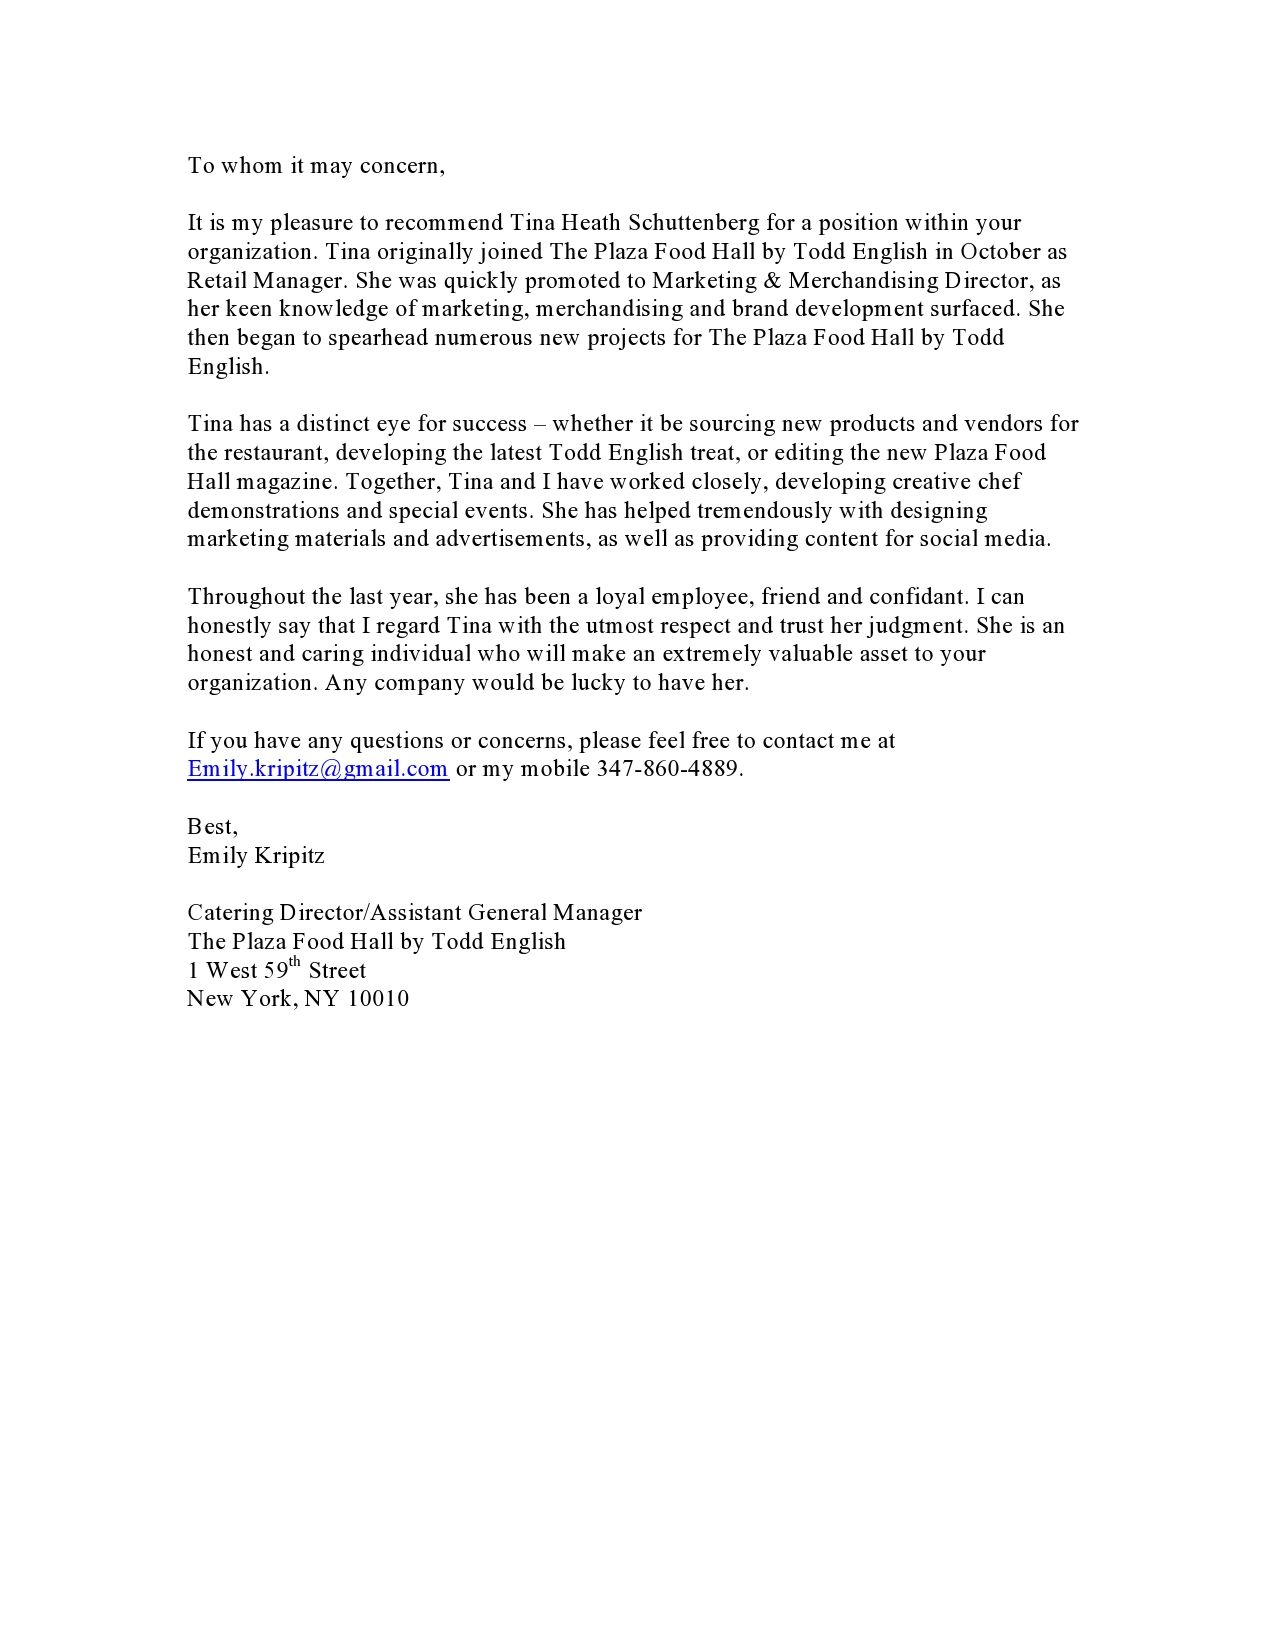 reference letter from emily former catering director at